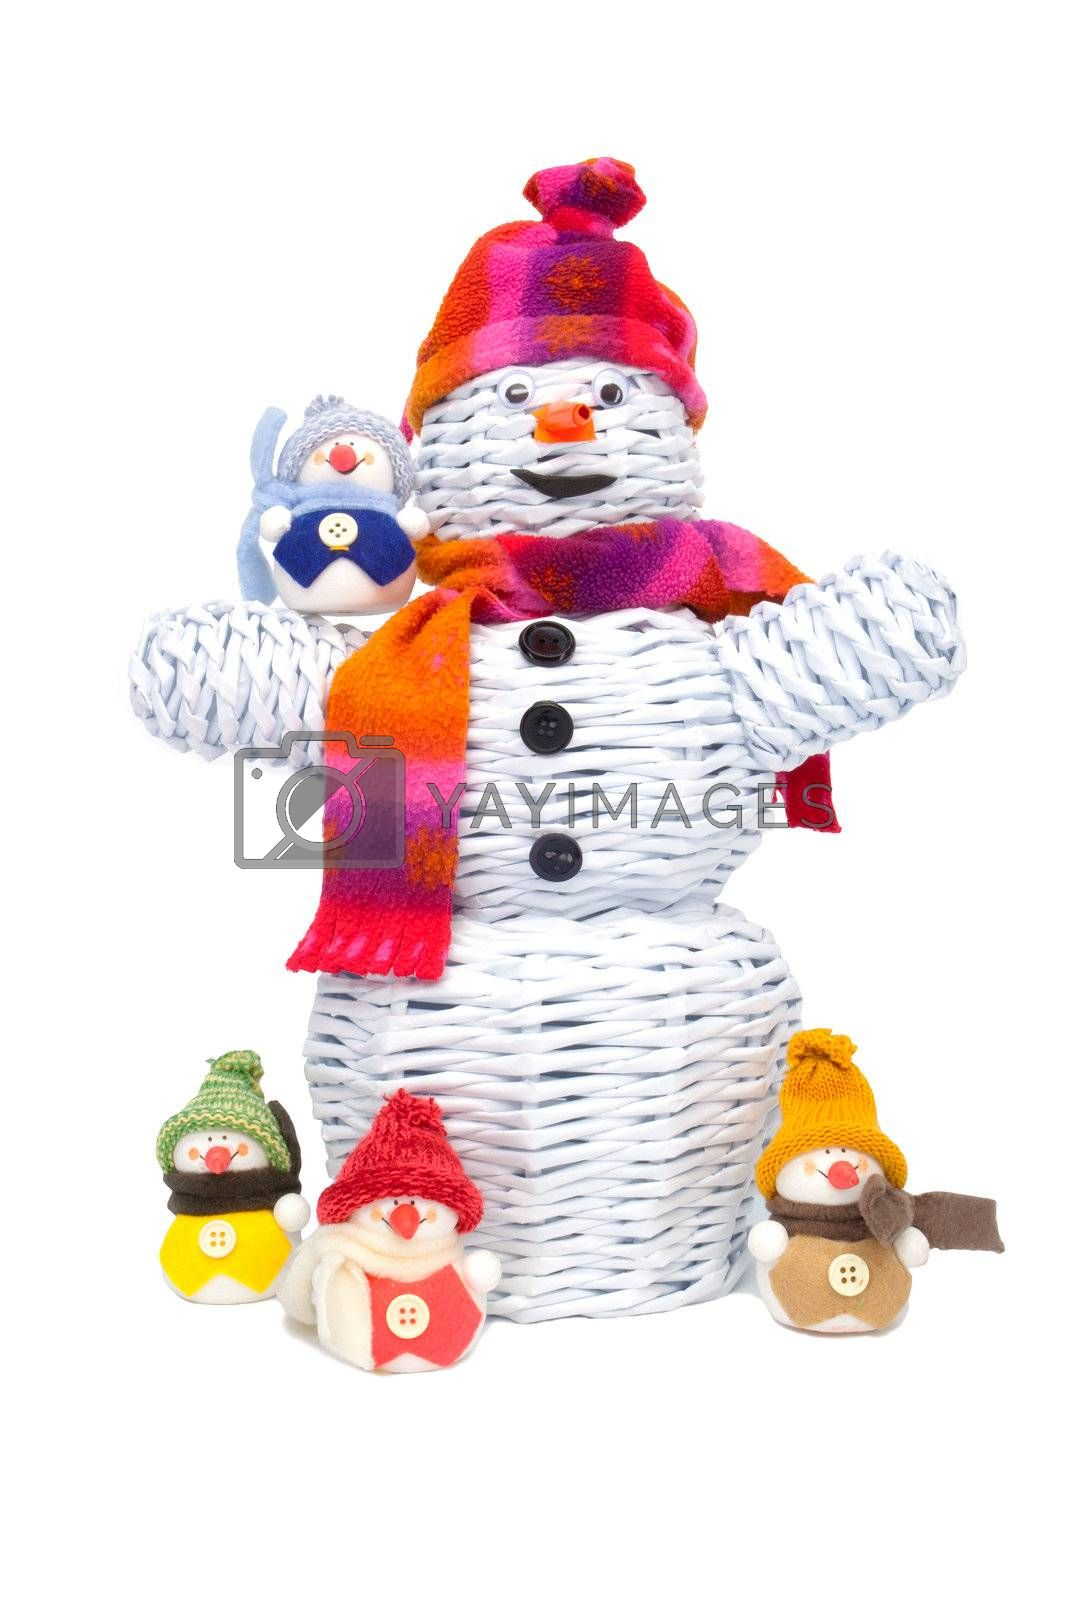 Great knitted snowman made from paper and other smaller snowmen around like children.